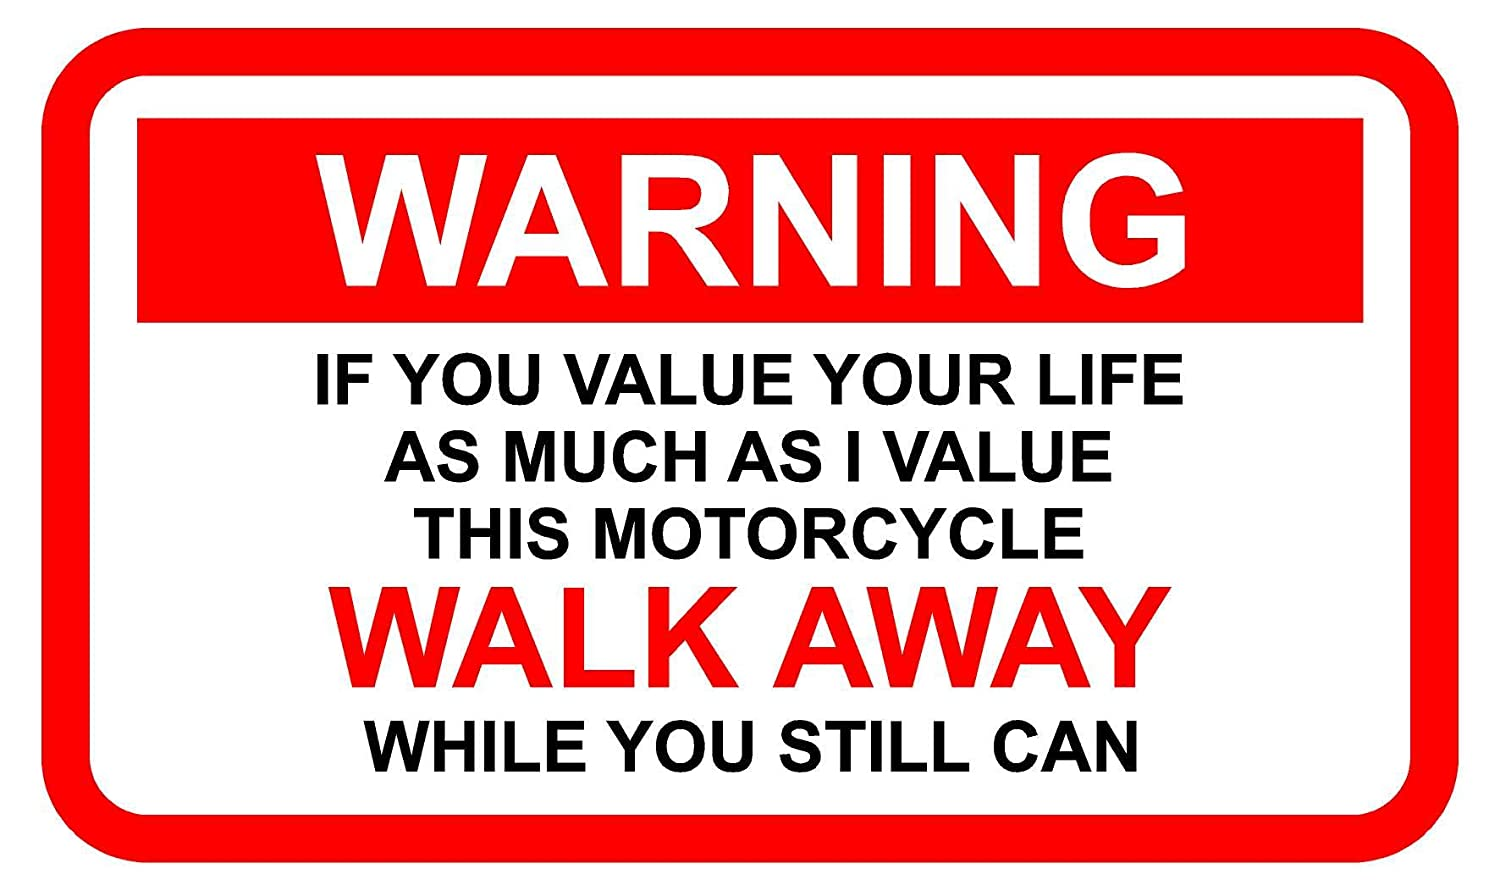 FUNNY WARNING STICKER FOR A MOTORCYCLE If u value your life WALK AWAY WHILE U 150mm x 100mm KPCM Display